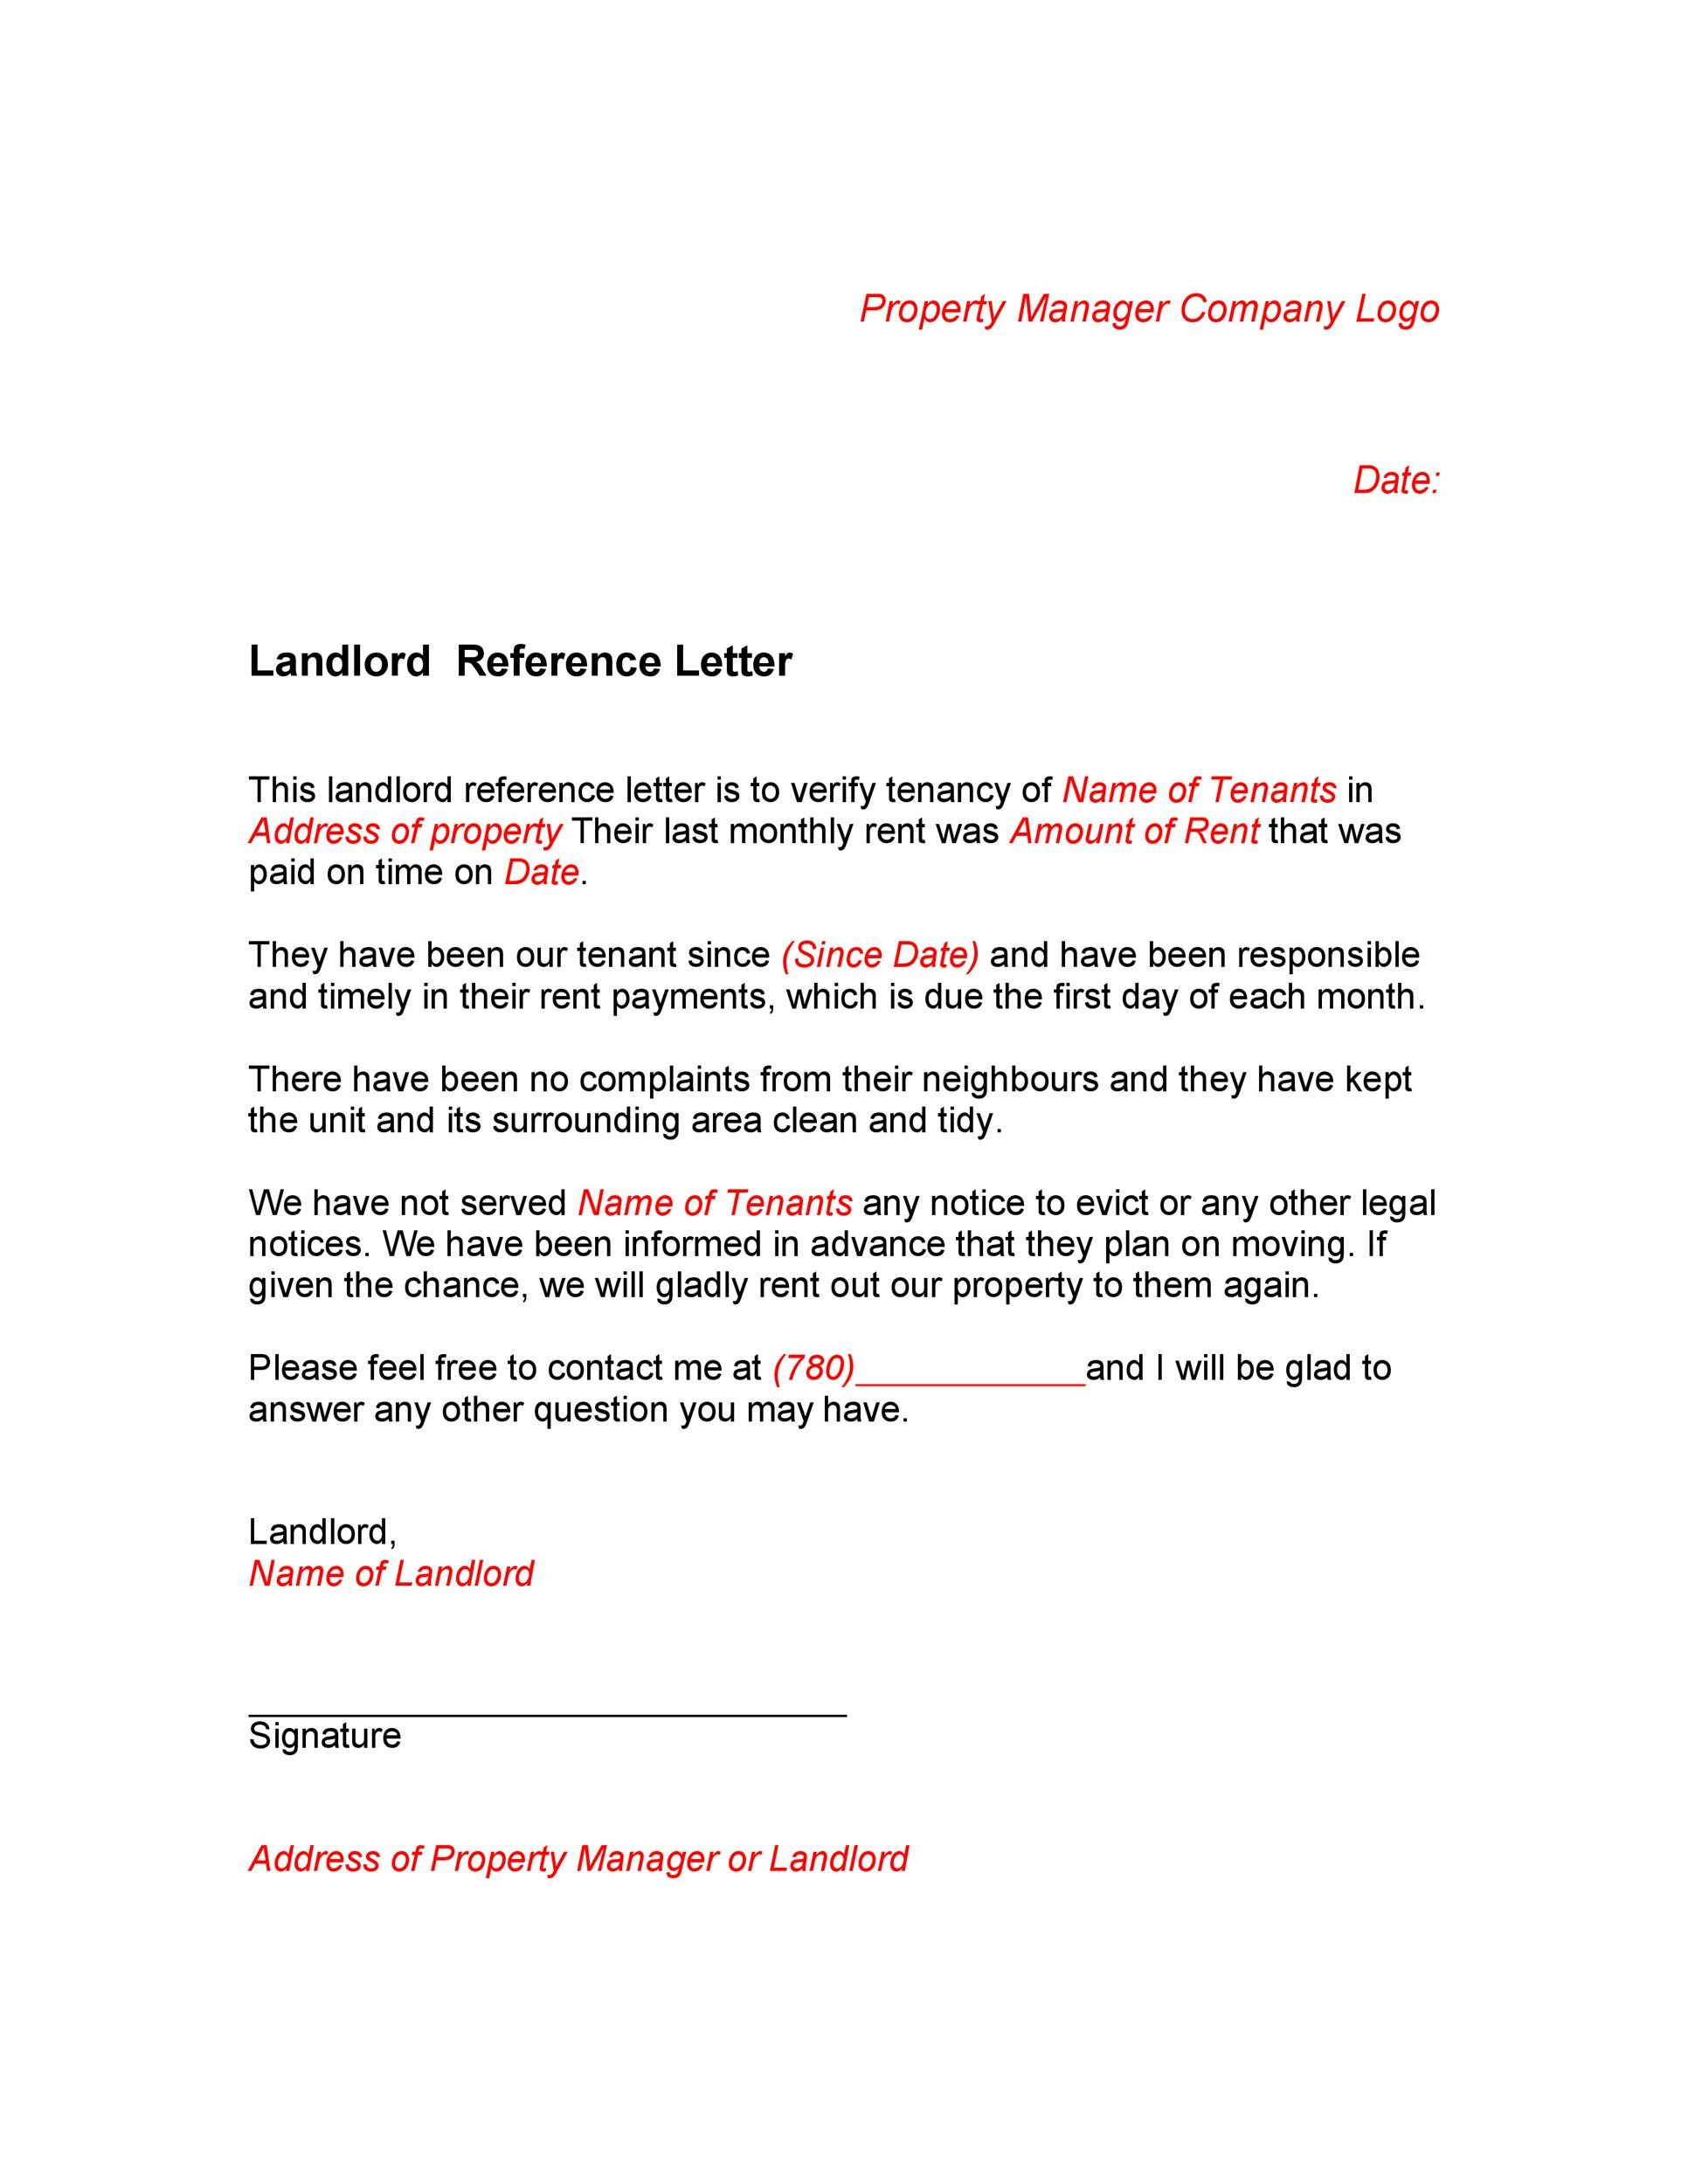 reference letter from landlord template 40 landlord reference letters form samples template lab